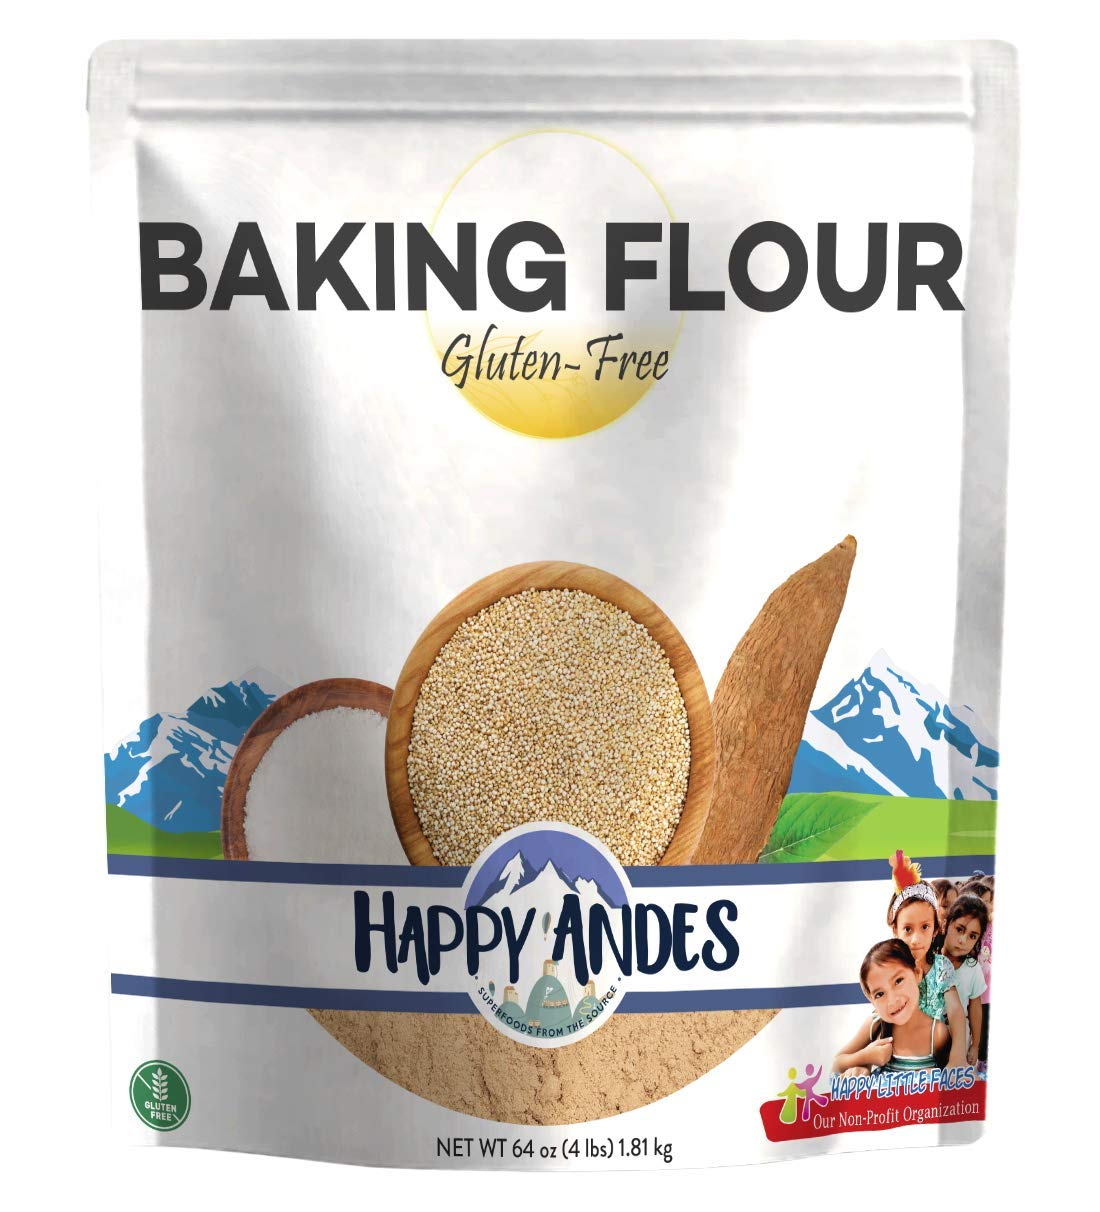 Happy Andes Gluten Free, All-Natural Baking Flour 4 lbs - Quinoa-Based Ingredients for Baked Bread - Healthy and Organic Alternative to Brownie and Cake Recipes - No Rice, No Xanthan Gum, Non-GMO by Happy Andes